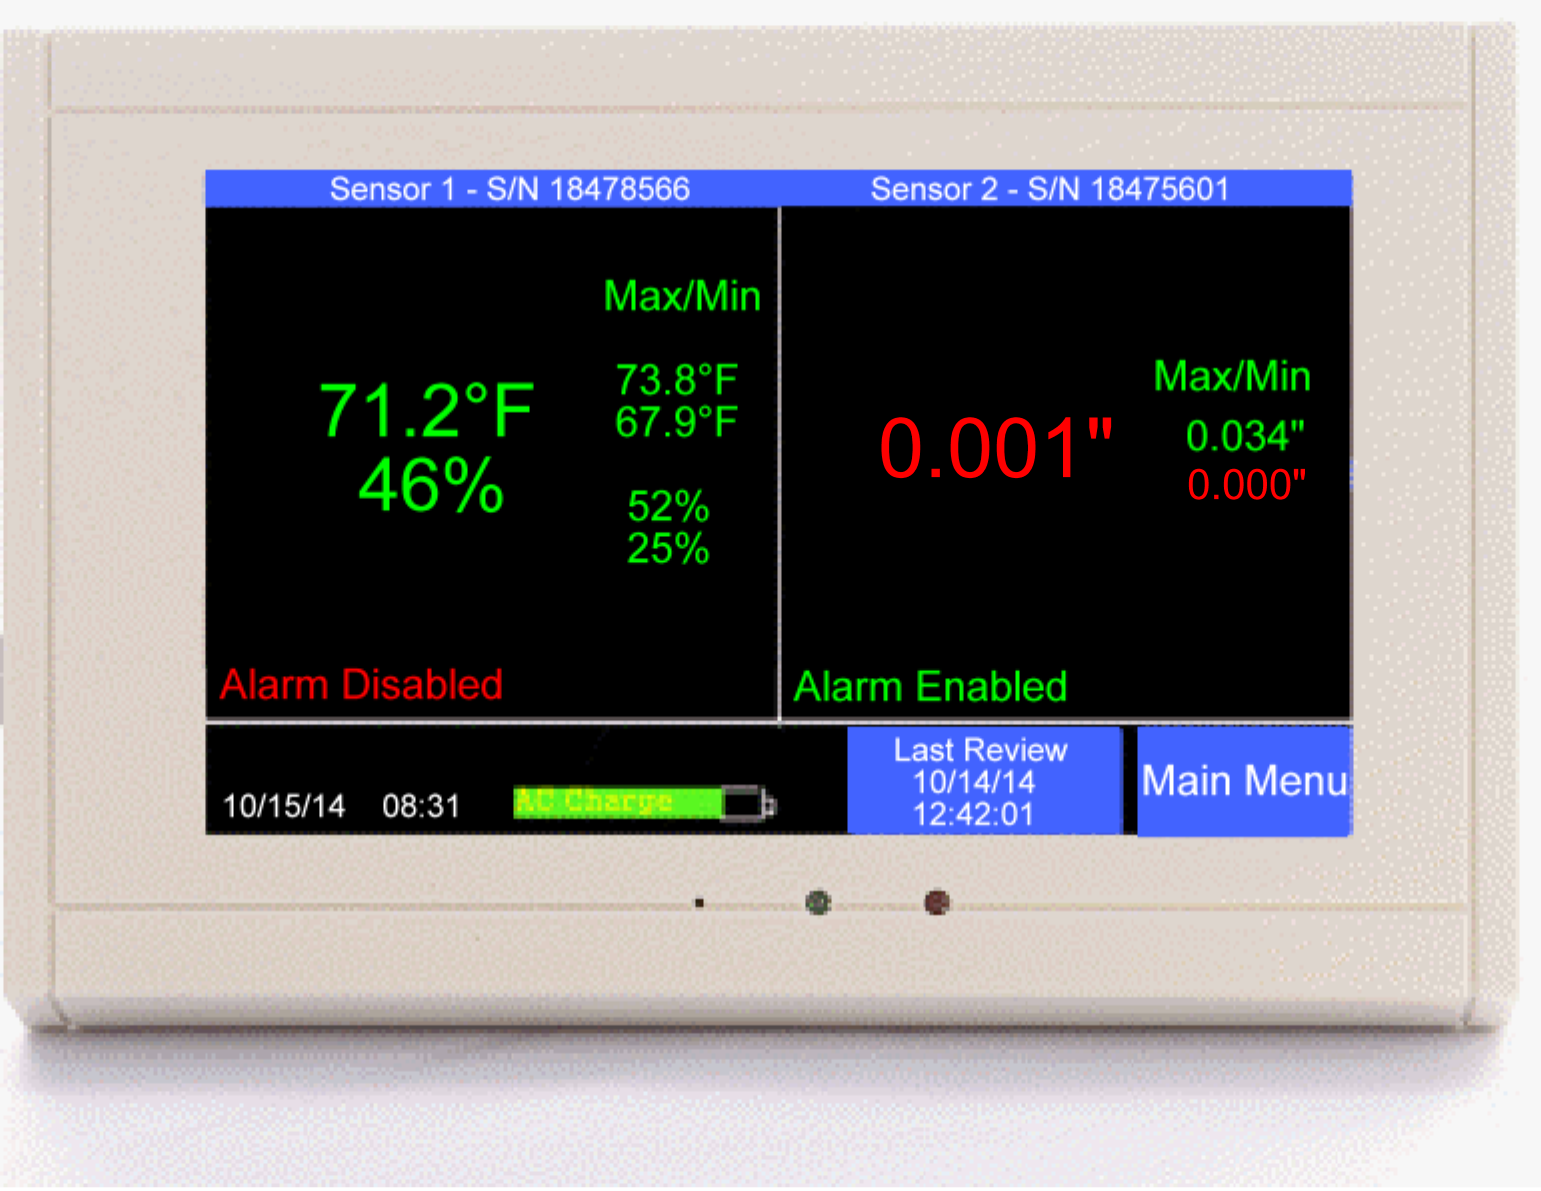 Tv2 Alarm And Log For Refrigerators Freezers Cleanrooms Etc Two Door Buzzer With Display W Pressure Temp Rh